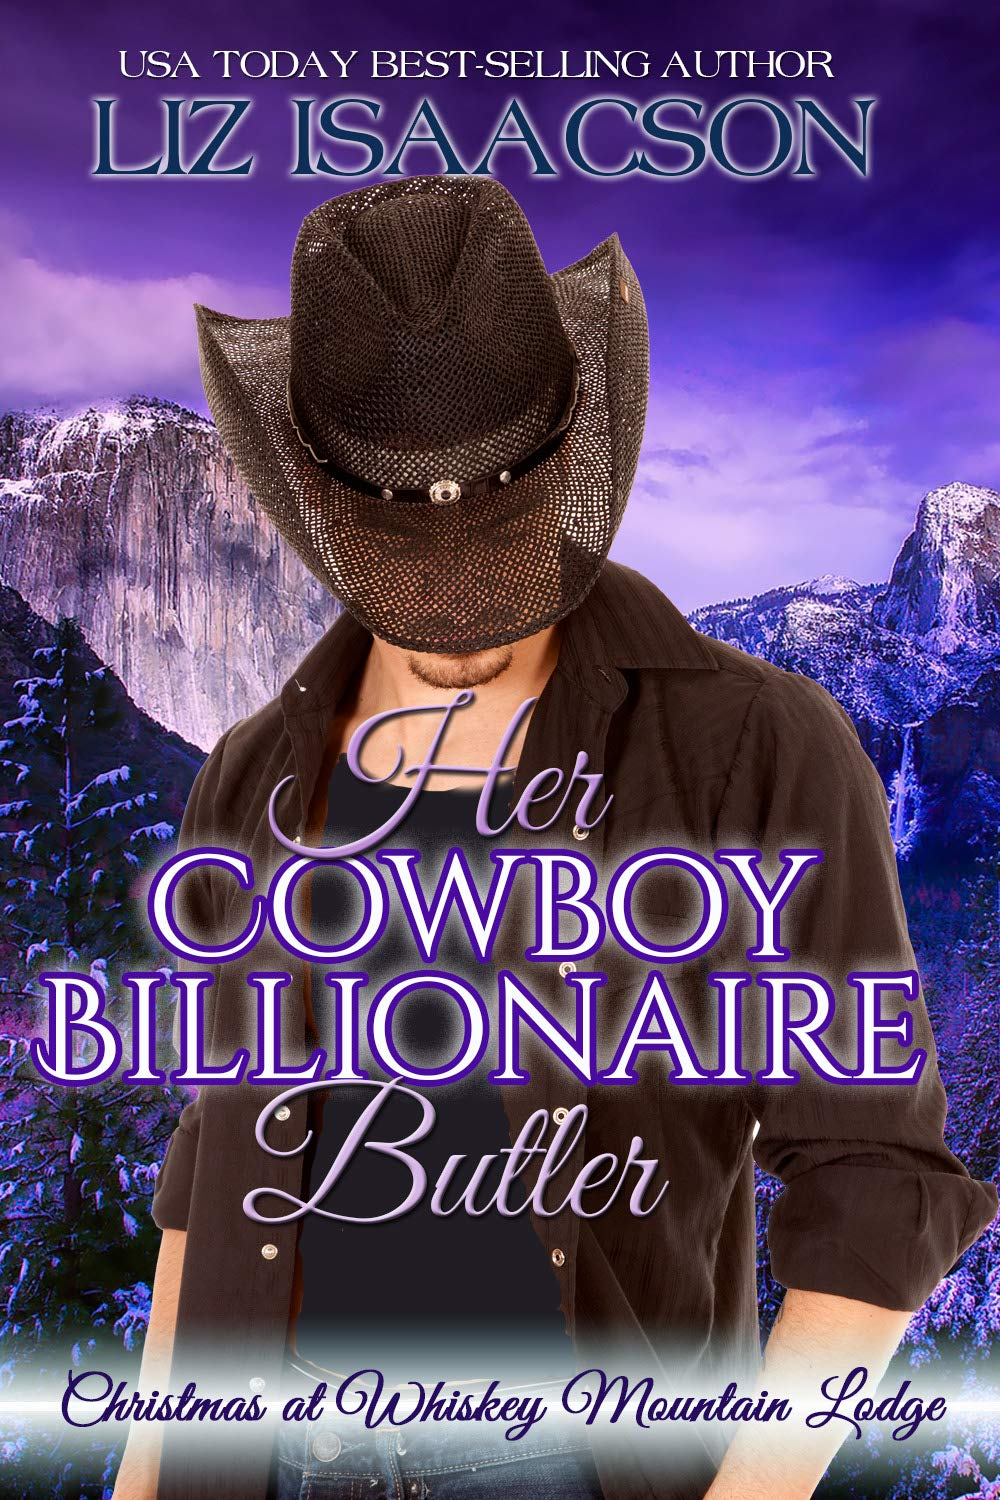 Her Cowboy Billionaire Butler: A Hammond Brothers Novel (Christmas at Whiskey Mountain Lodge Book 2)